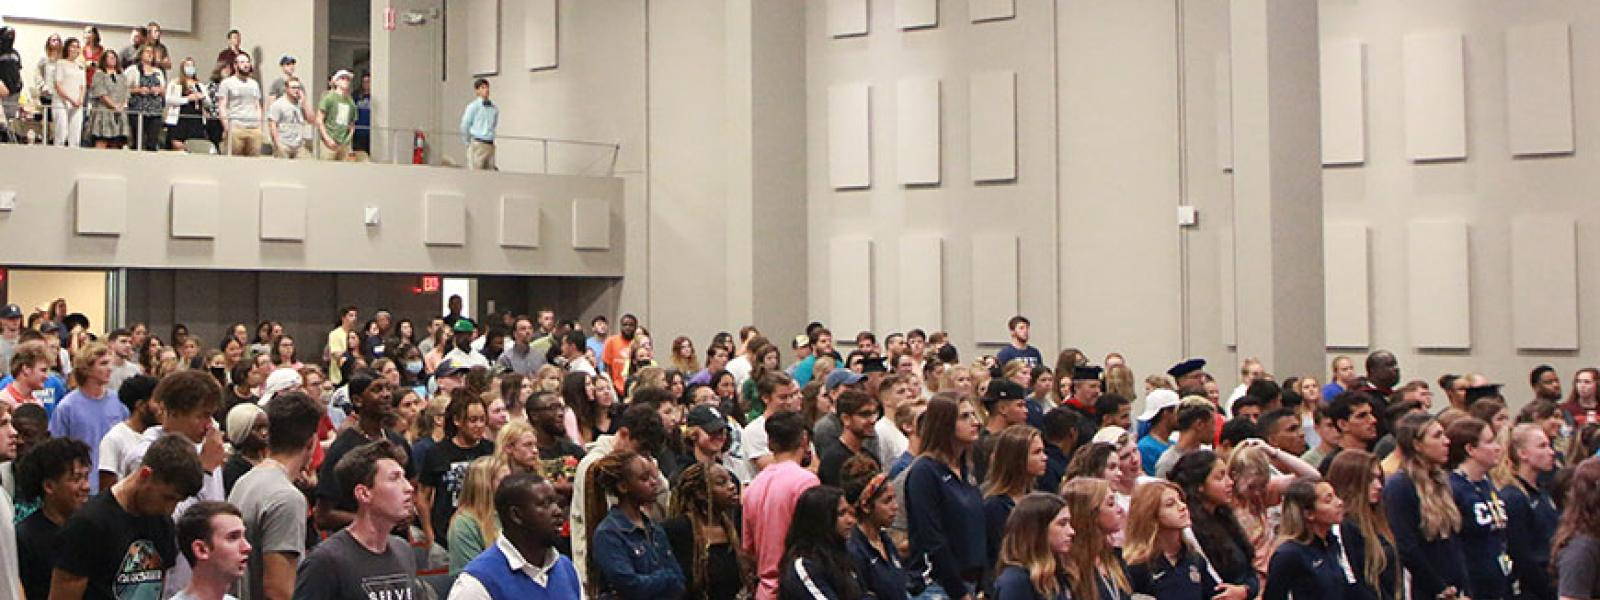 CIU students worship at the Opening Convocation